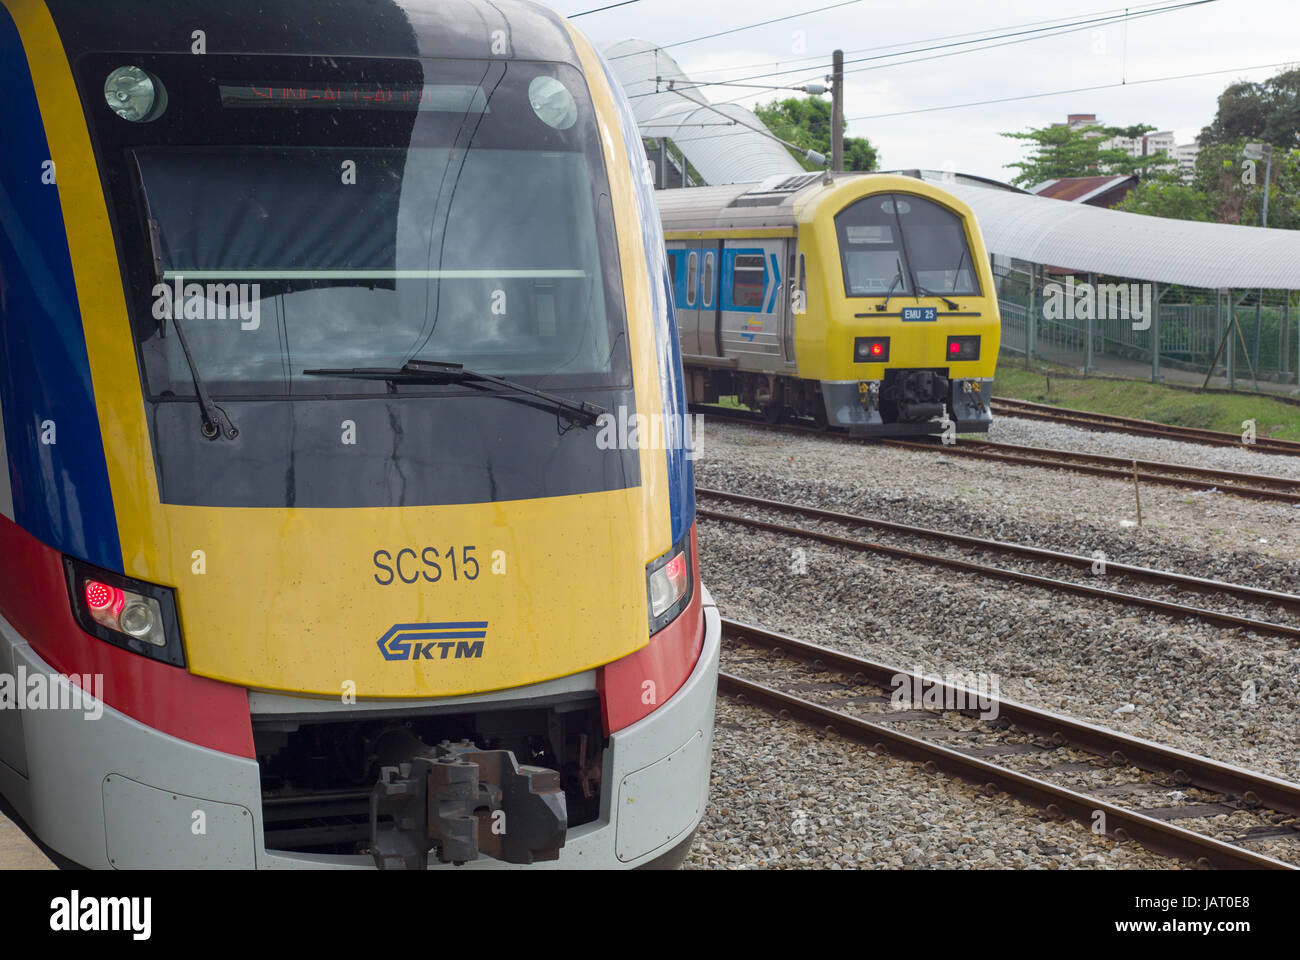 KTM Class 83 and Class 92 electric multiple unit trains at Kajang station, Malaysia - Stock Image